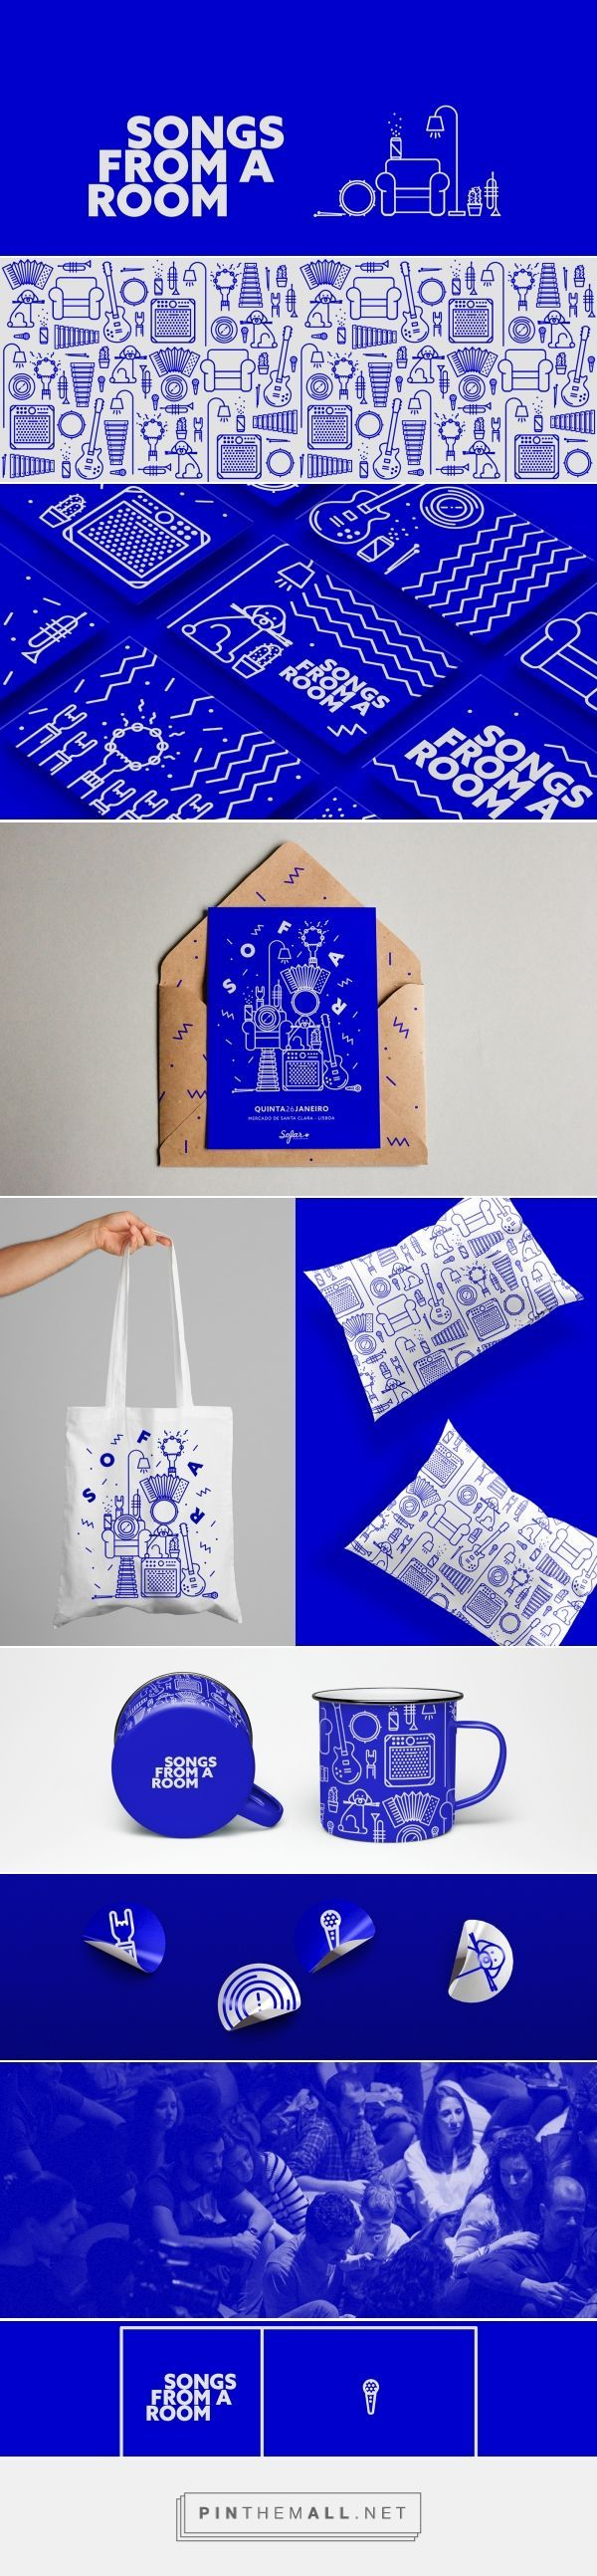 Sofar | Songs From a Room on Behance... - a grouped images picture - Pin Them All: